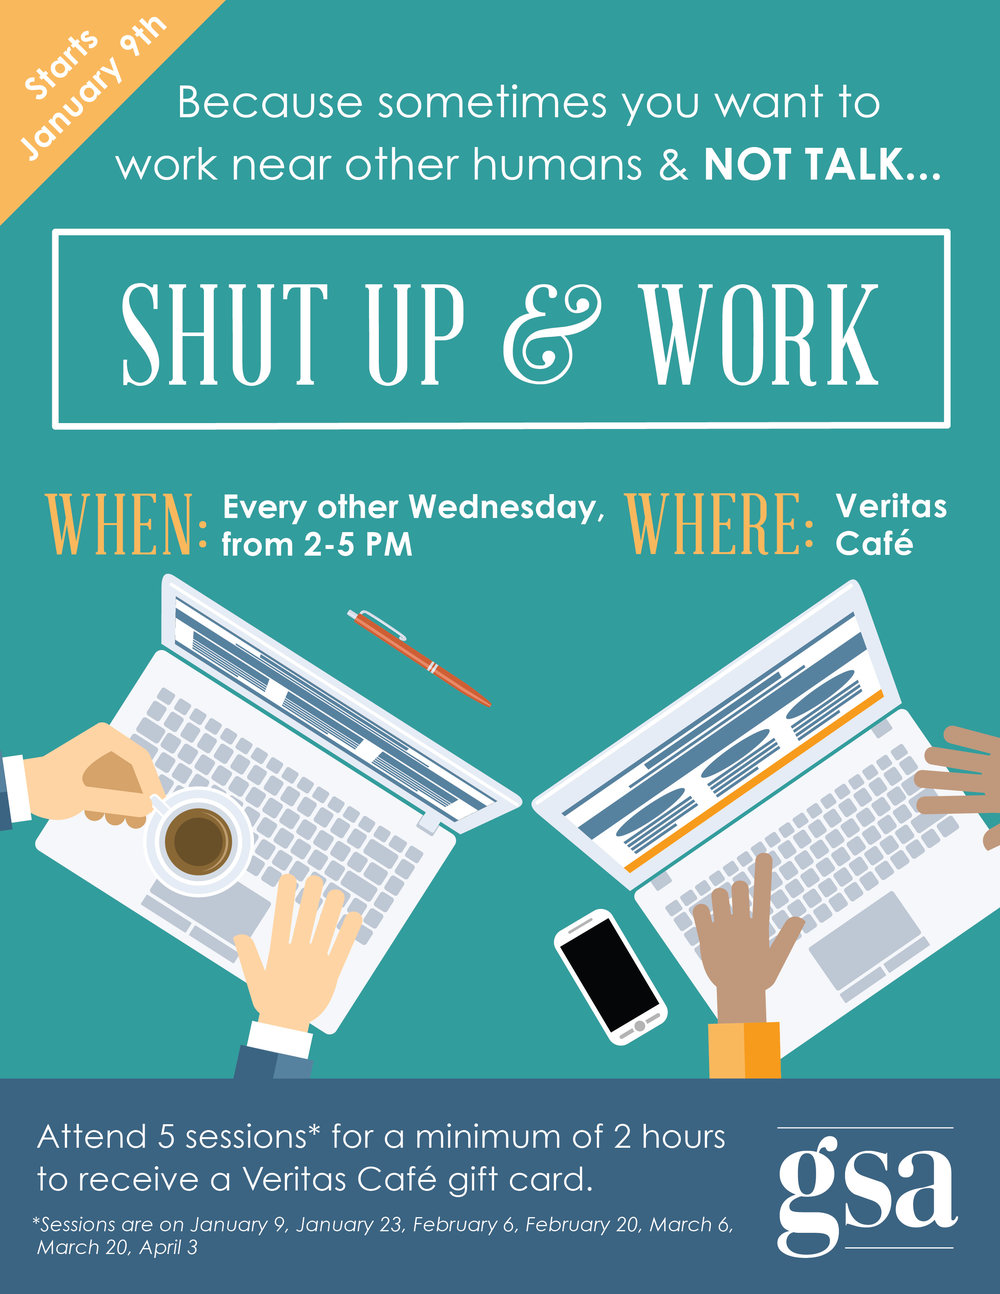 Because sometimes you want to work near other humans and not talk… Shut Up & Work. Every other Wednesday from 2-5pm in Veritas Cafe. Attend 5 sessions for a minimum of 2 hours to receive a Veritas Cafe gift card. Sessions are on March 6, March 20, April 3